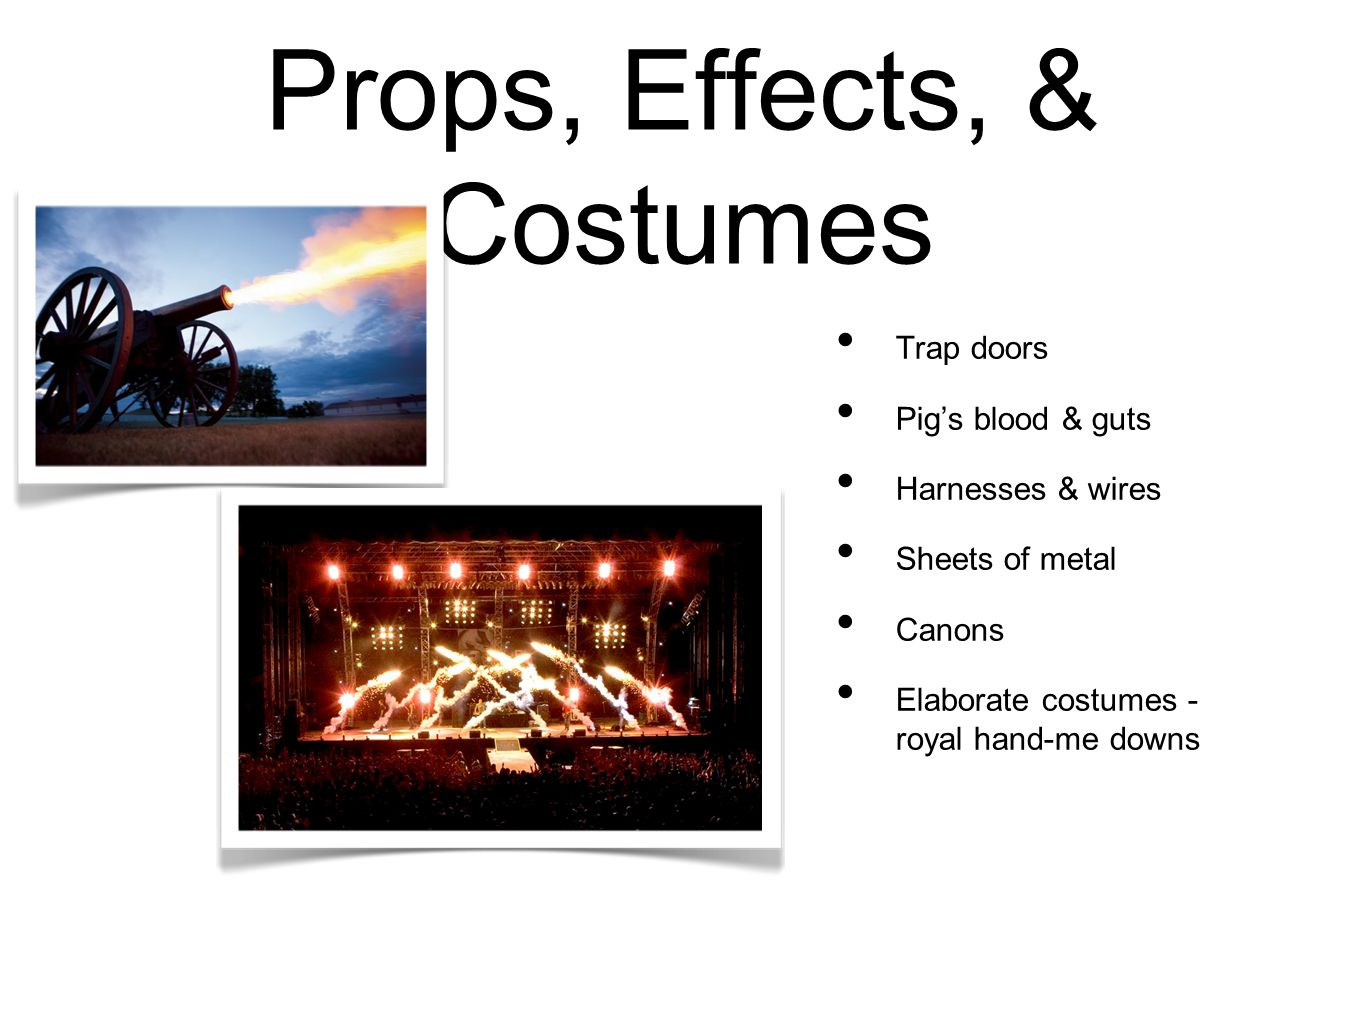 Props, Effects, & Costumes